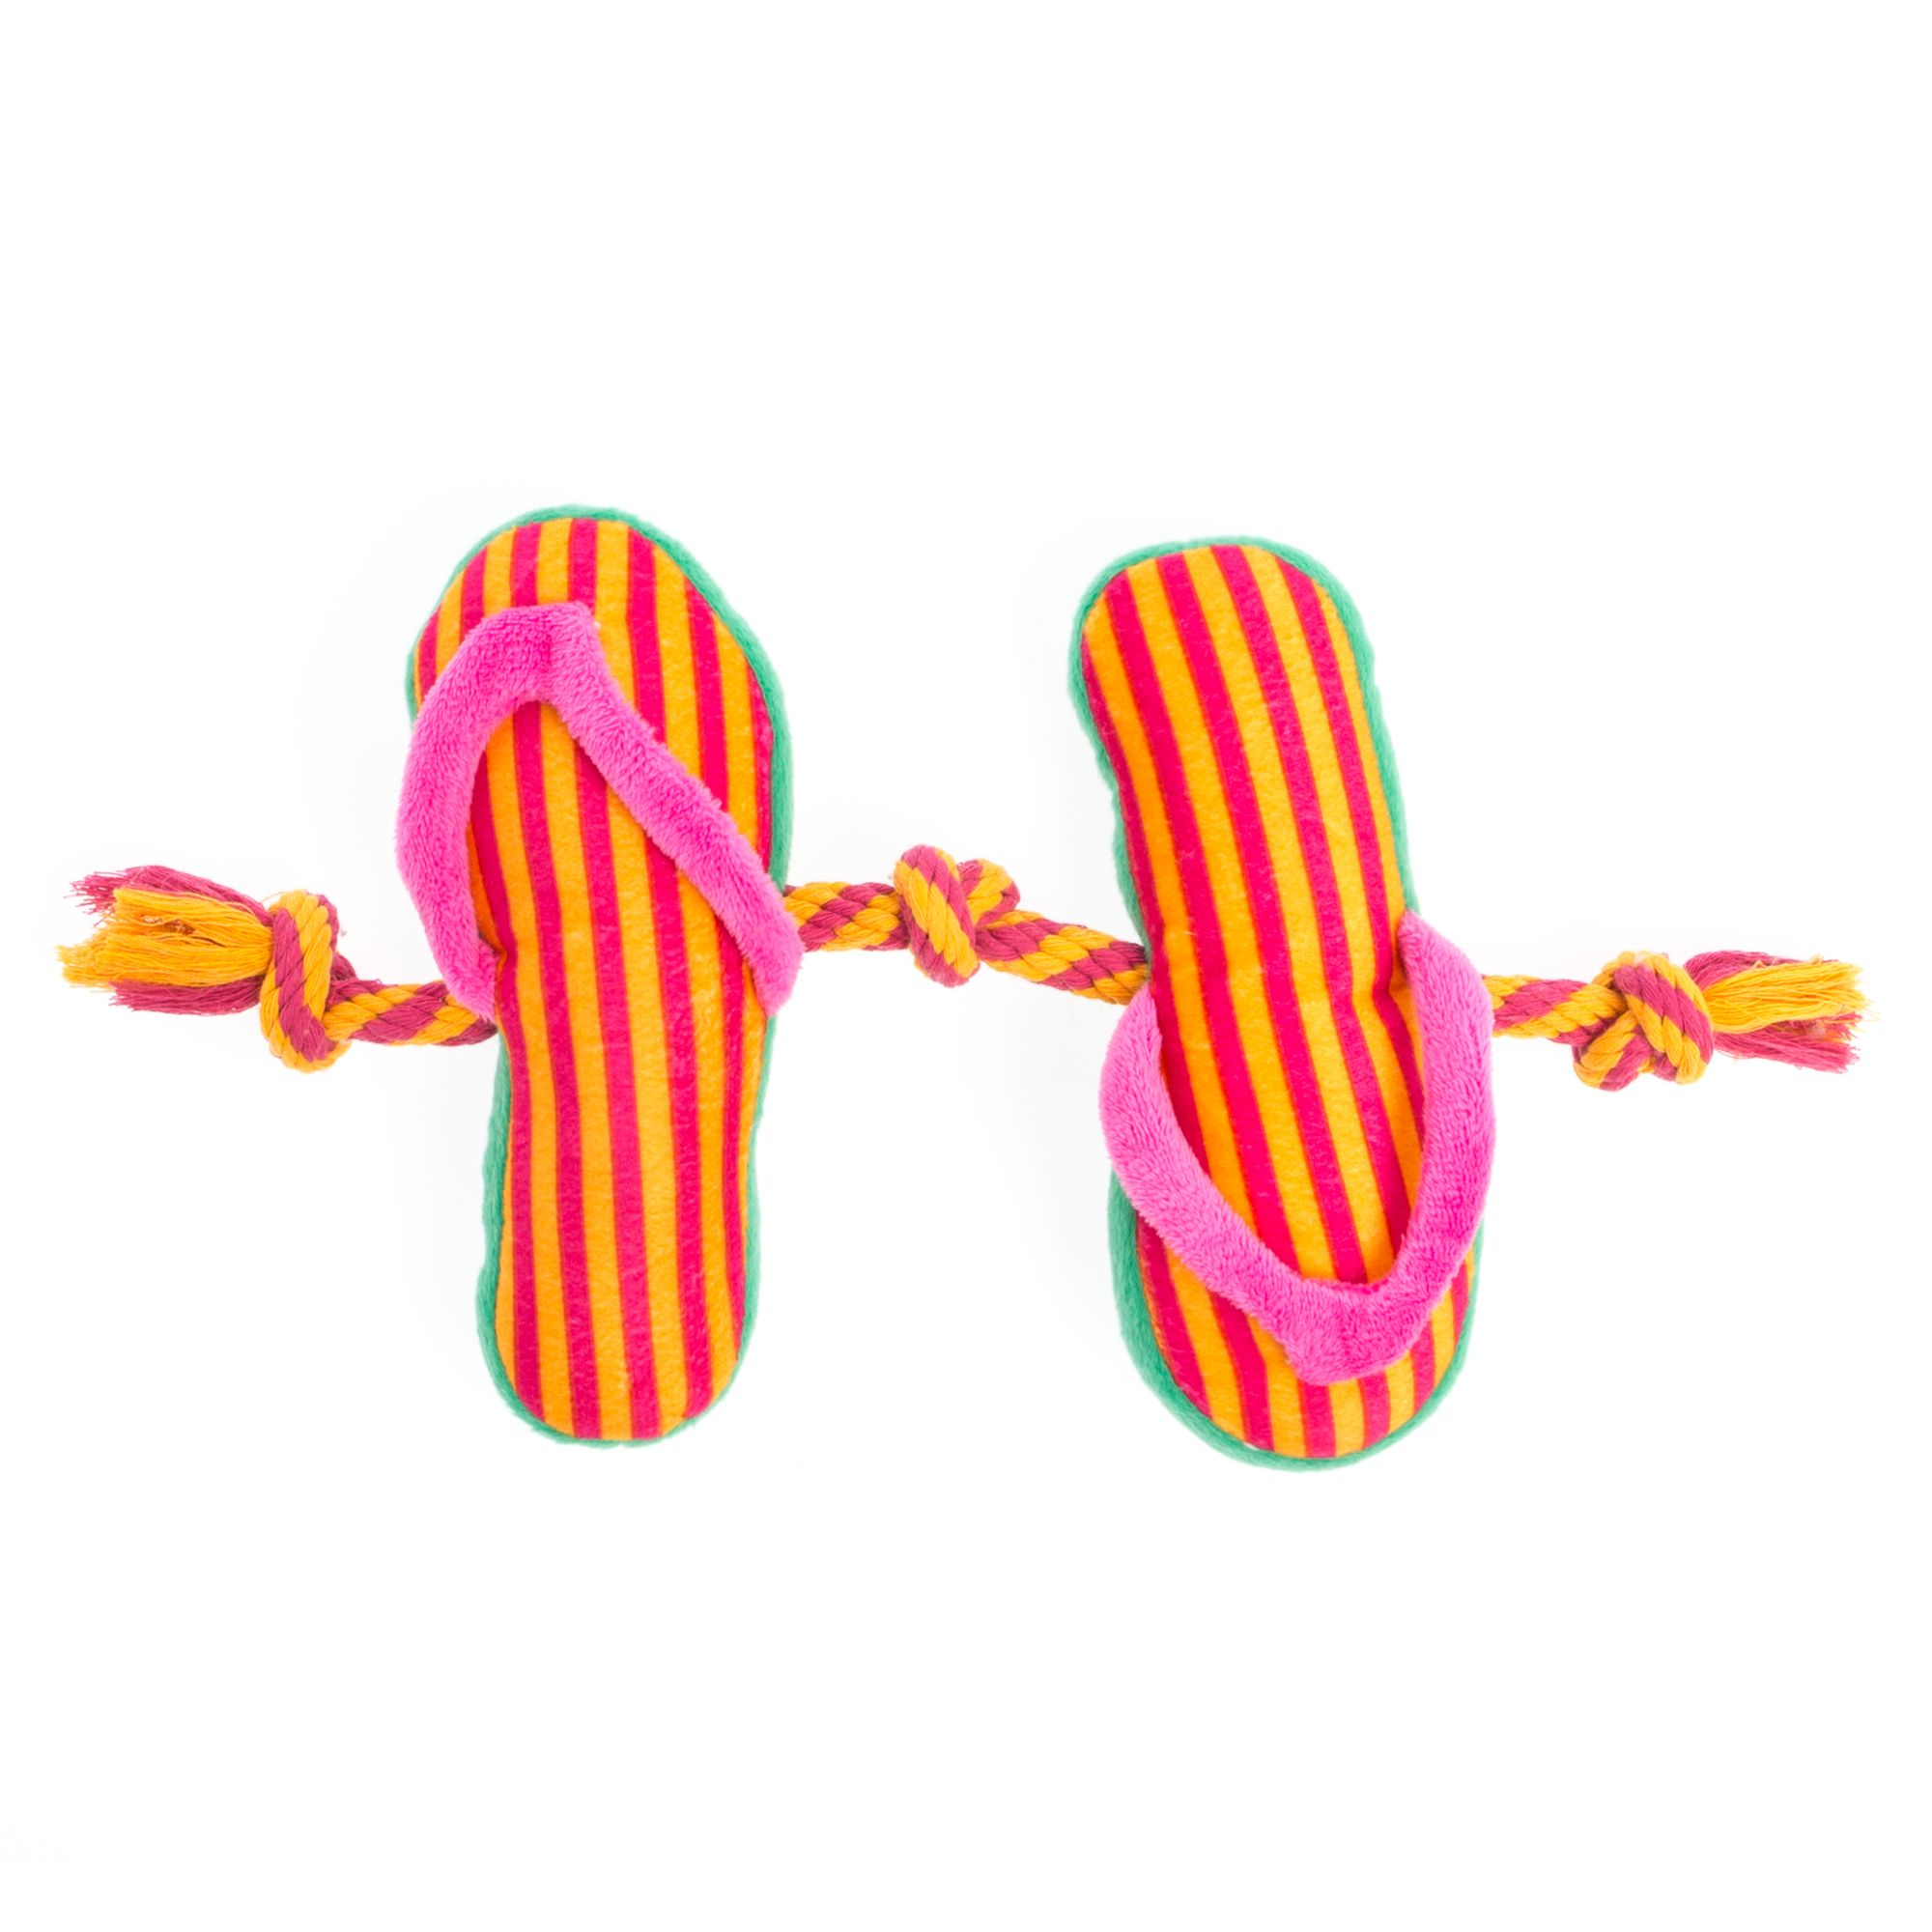 Top Paw Flip Flop 3-Knot Rope Dog Toy, Pink 5263953